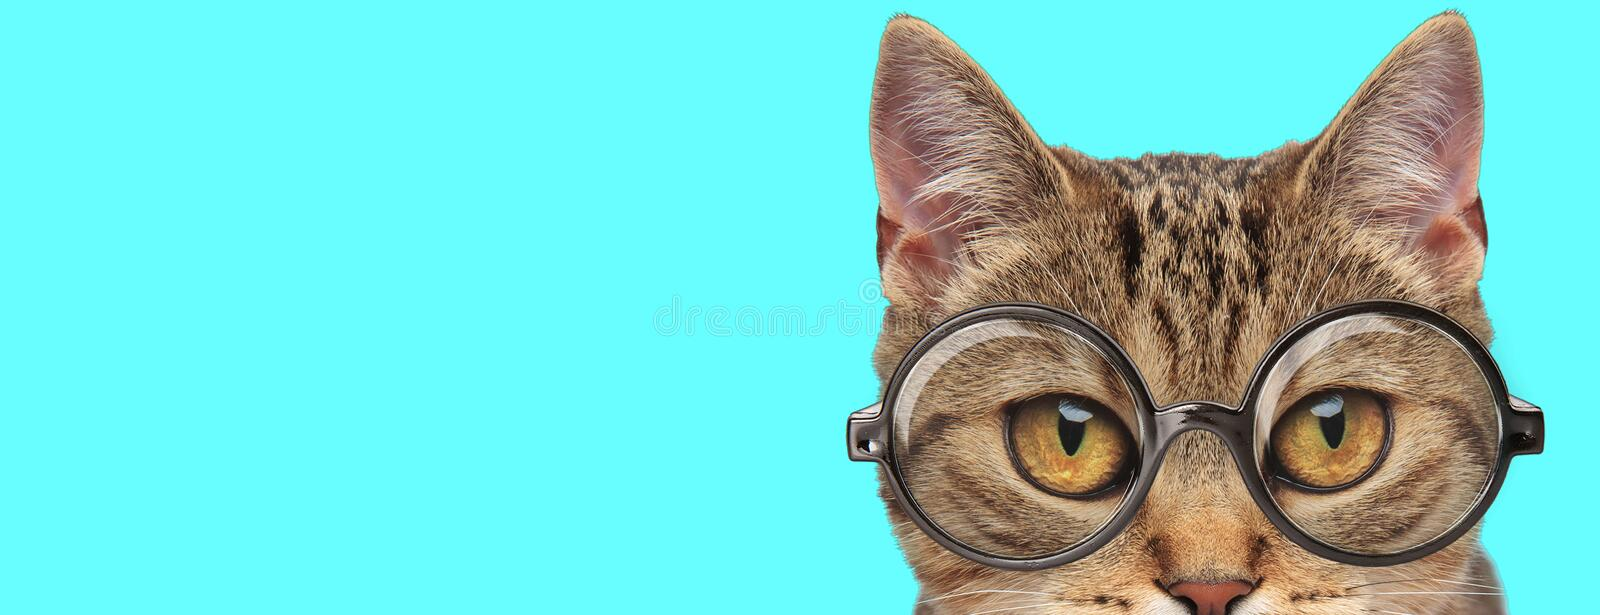 Cute metis cat with eyeglasses and half of face exposed royalty free stock photos